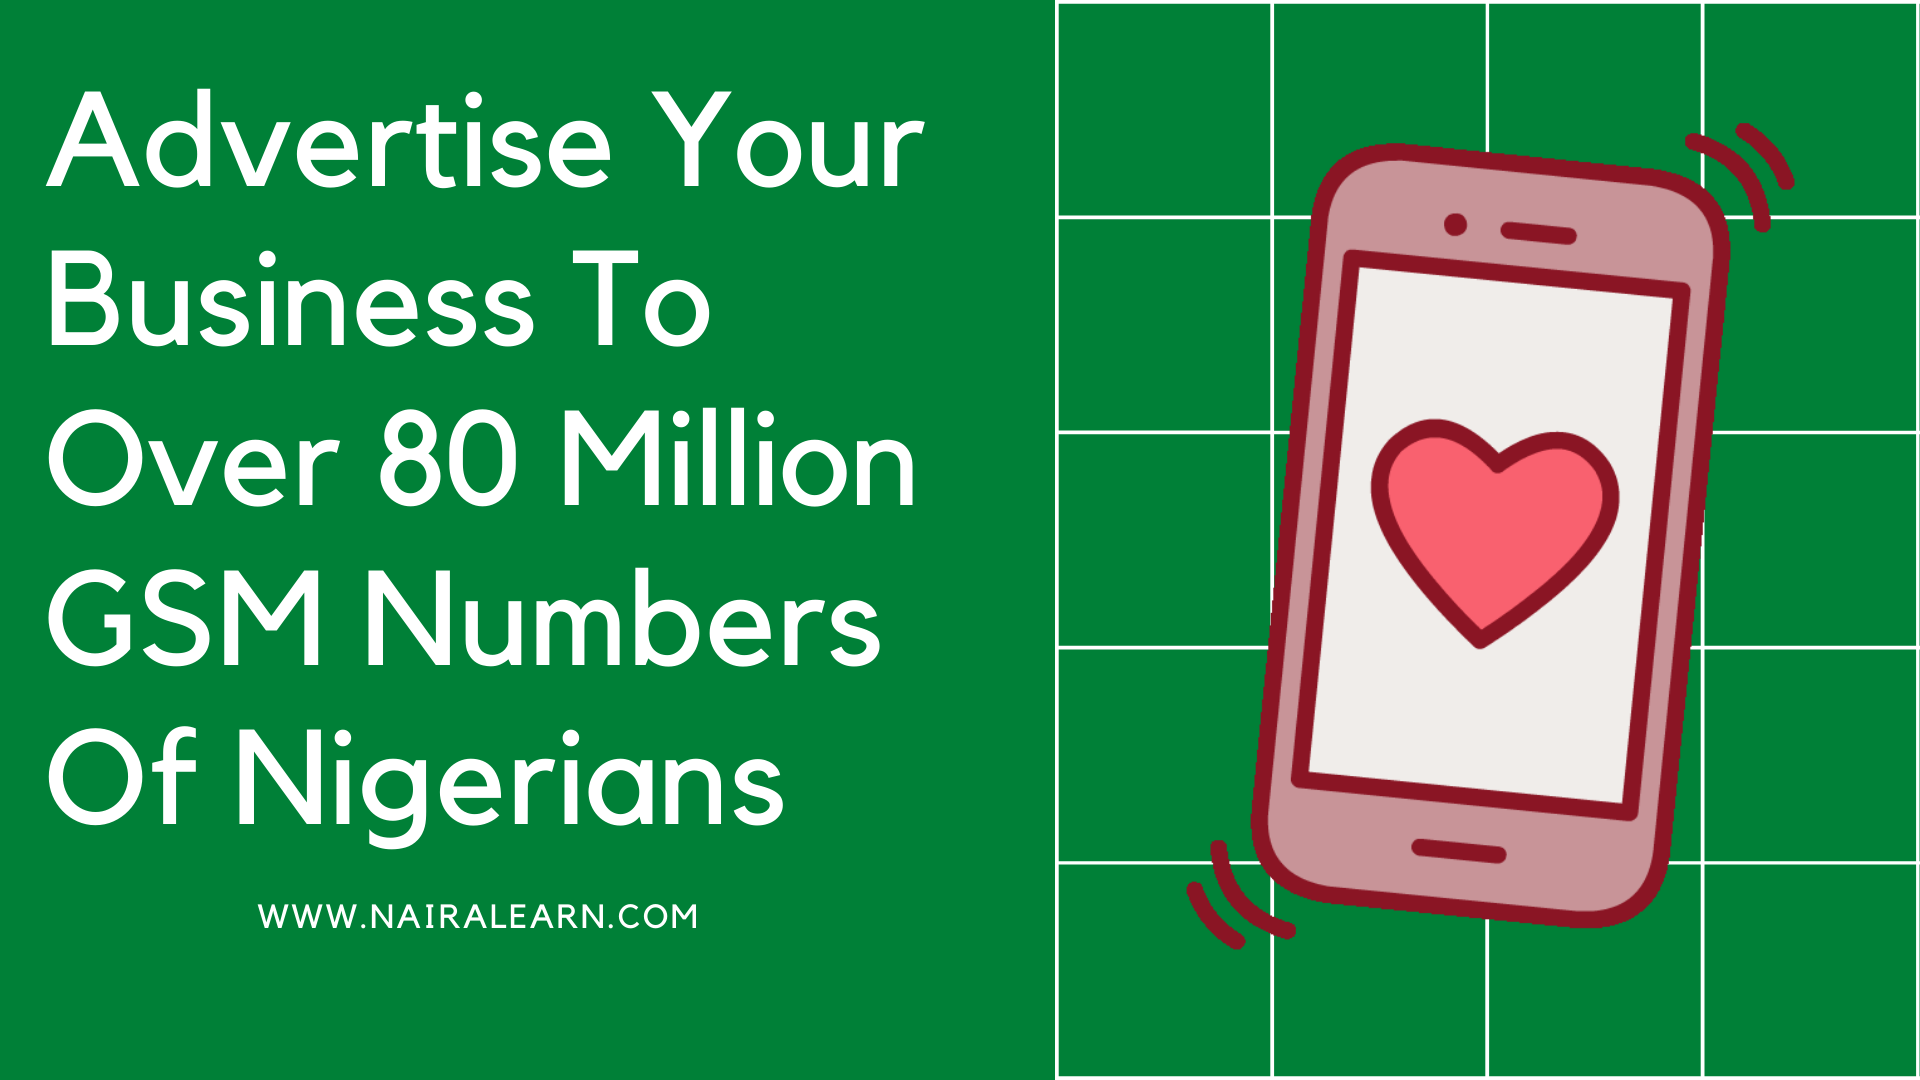 Advertise Your Business To Over 80 Million GSM Numbers Of Nigerians, Database